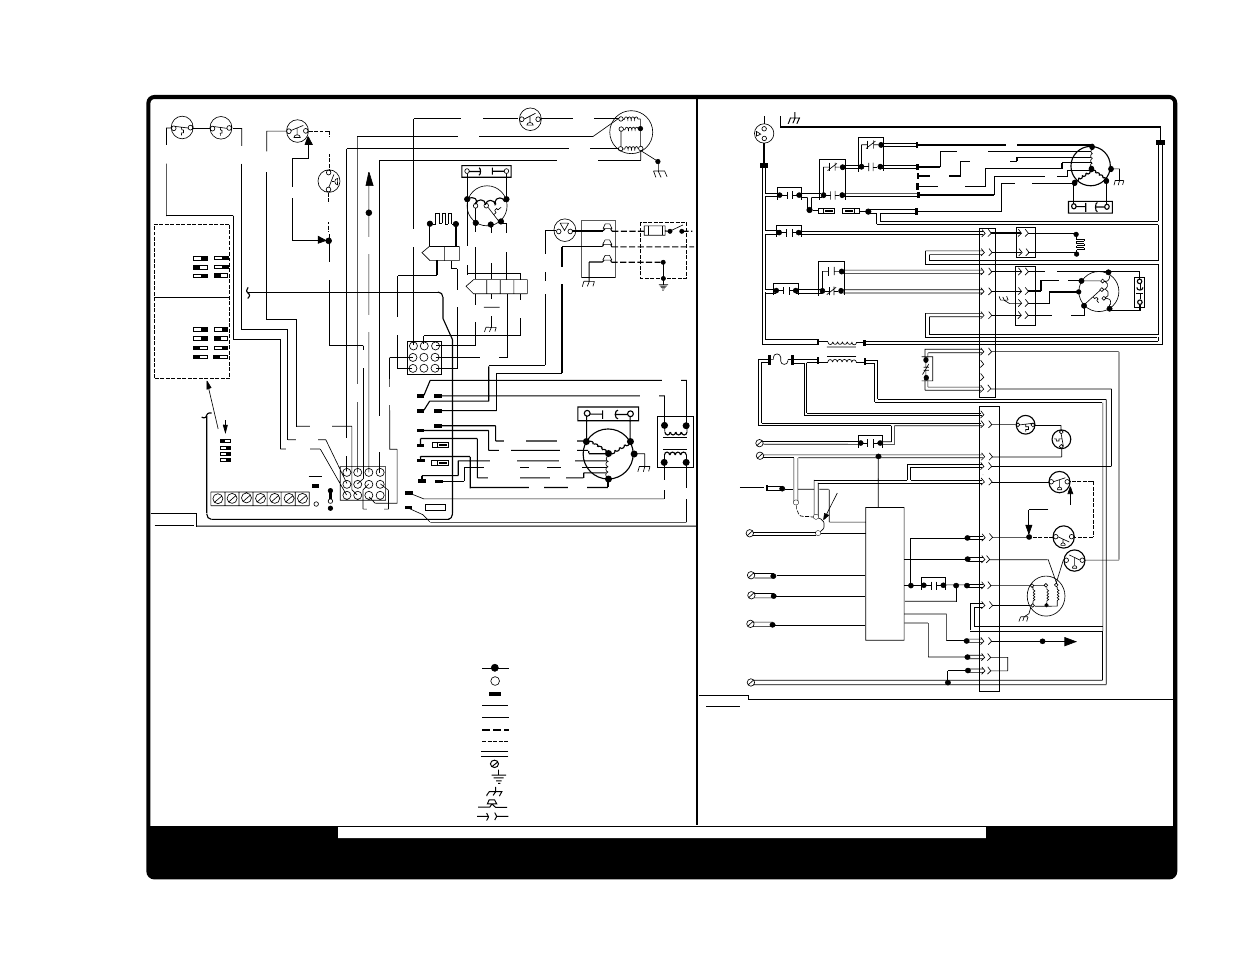 audiovox prestige remote start wiring diagram audiovox wiring diagram exles